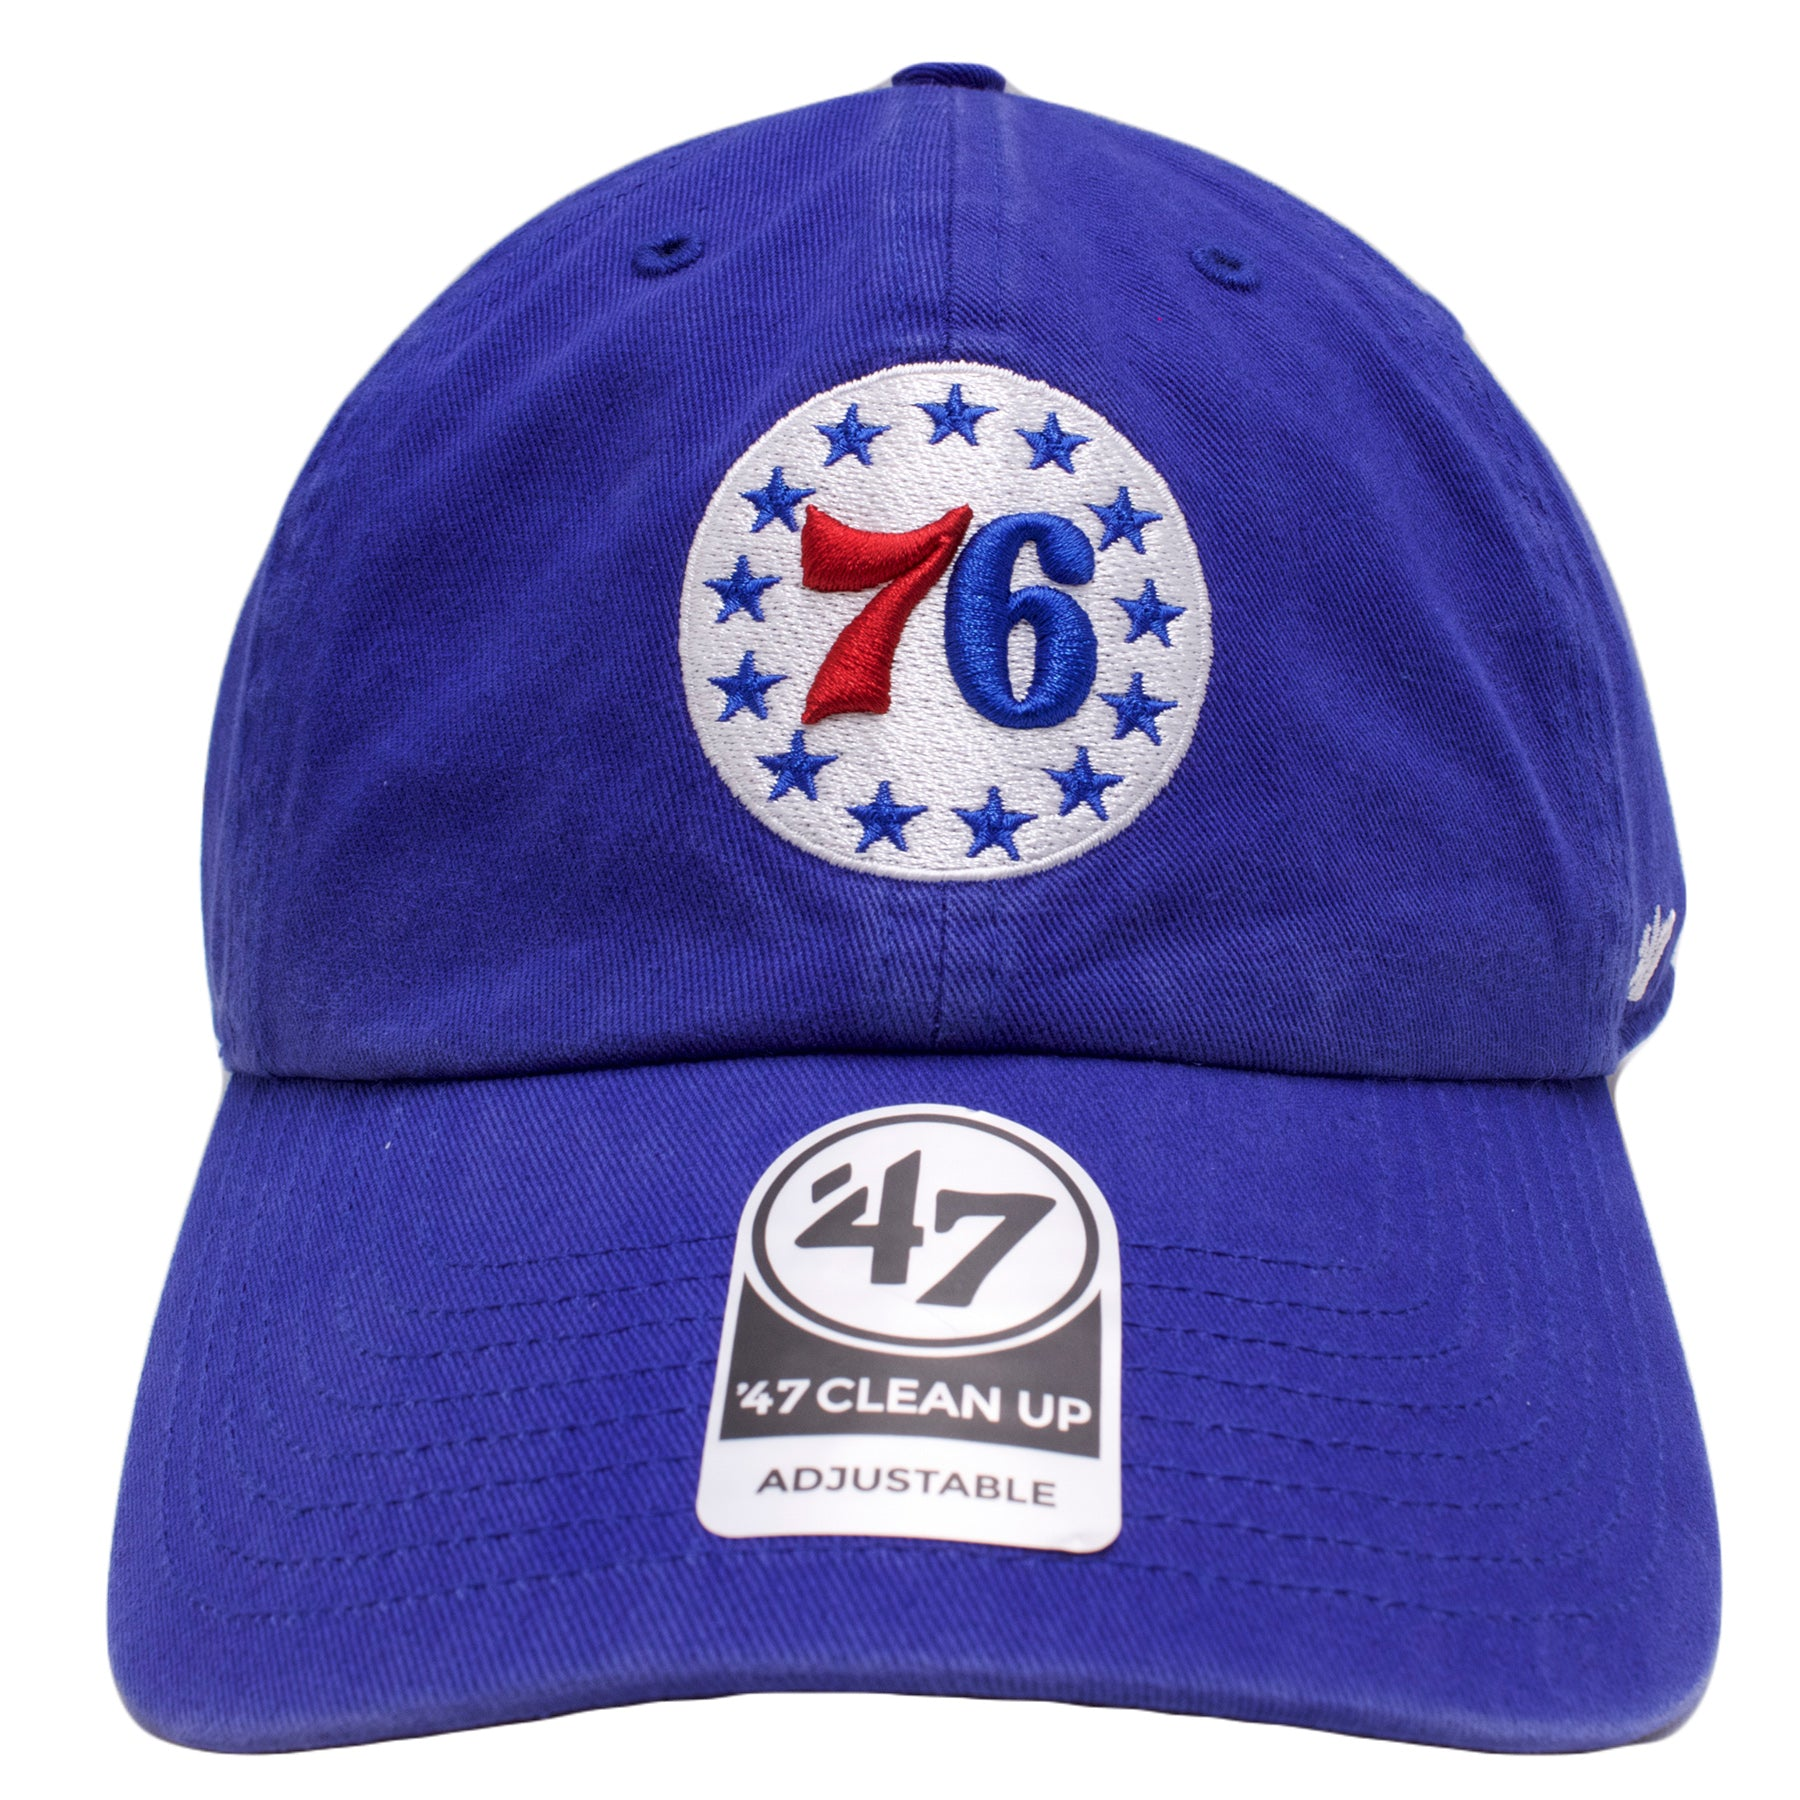 new arrivals 3d105 e94b9 ... purchase the royal blue philadelphia 76ers clean up dad hat has a philadelphia  76ers logo embroidered uk philadelphia 76ers new era 2018 nba ...